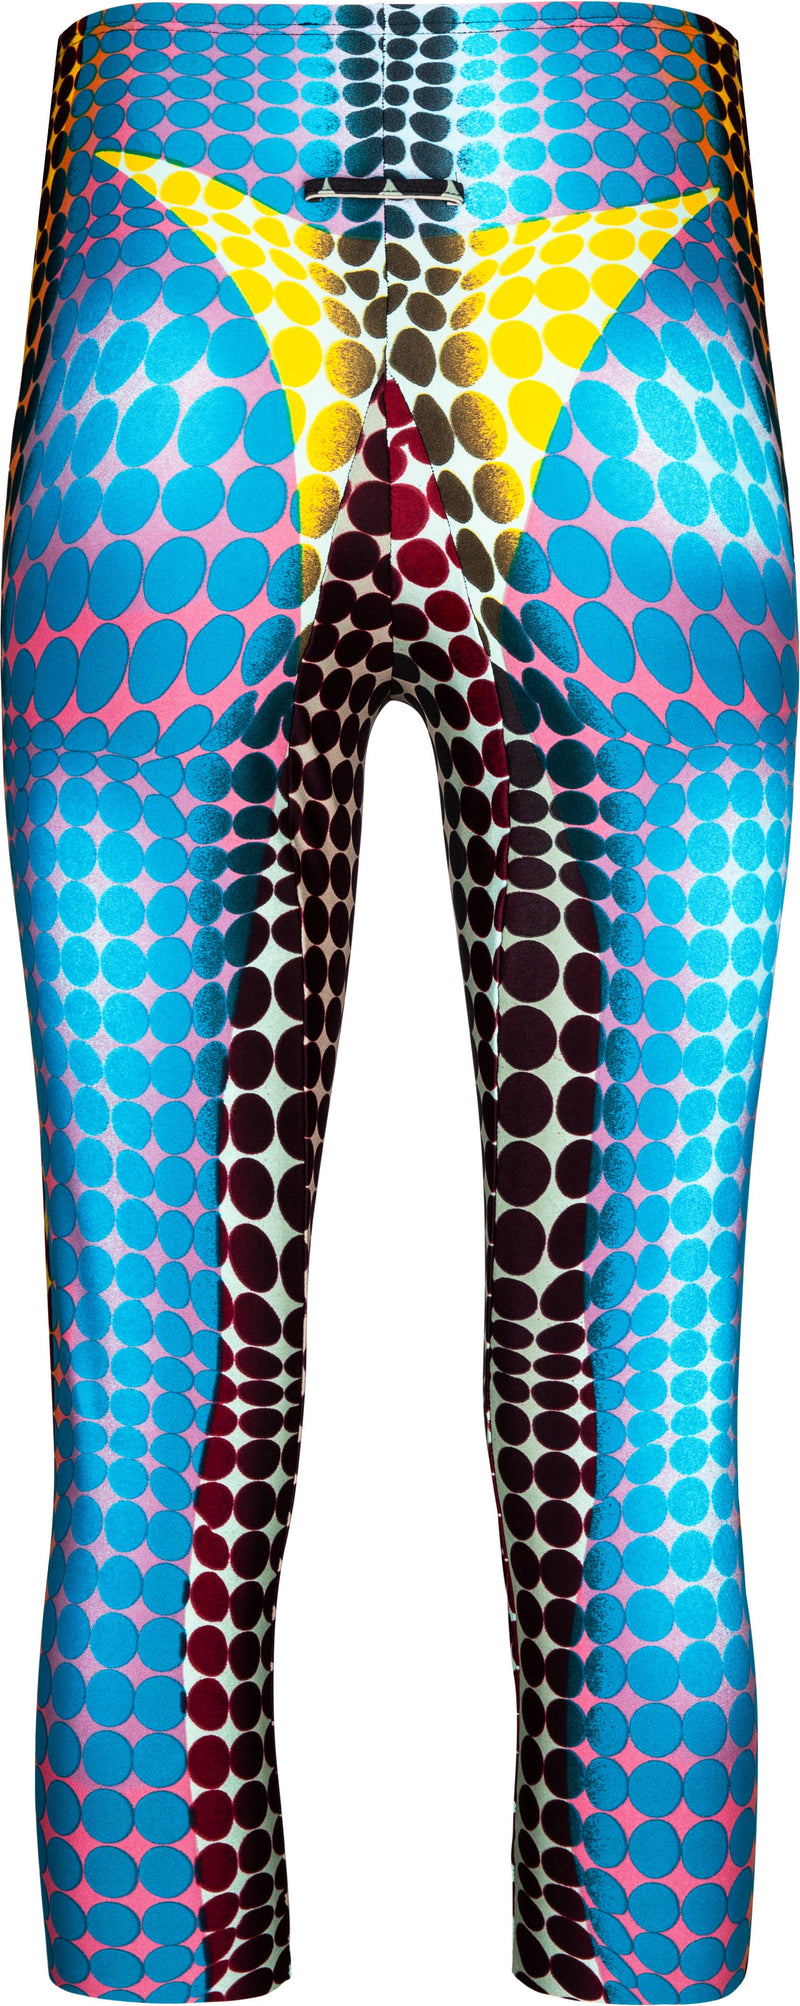 Jean Paul Gaultier Fall 1995 Runway Cyber Dots Pants